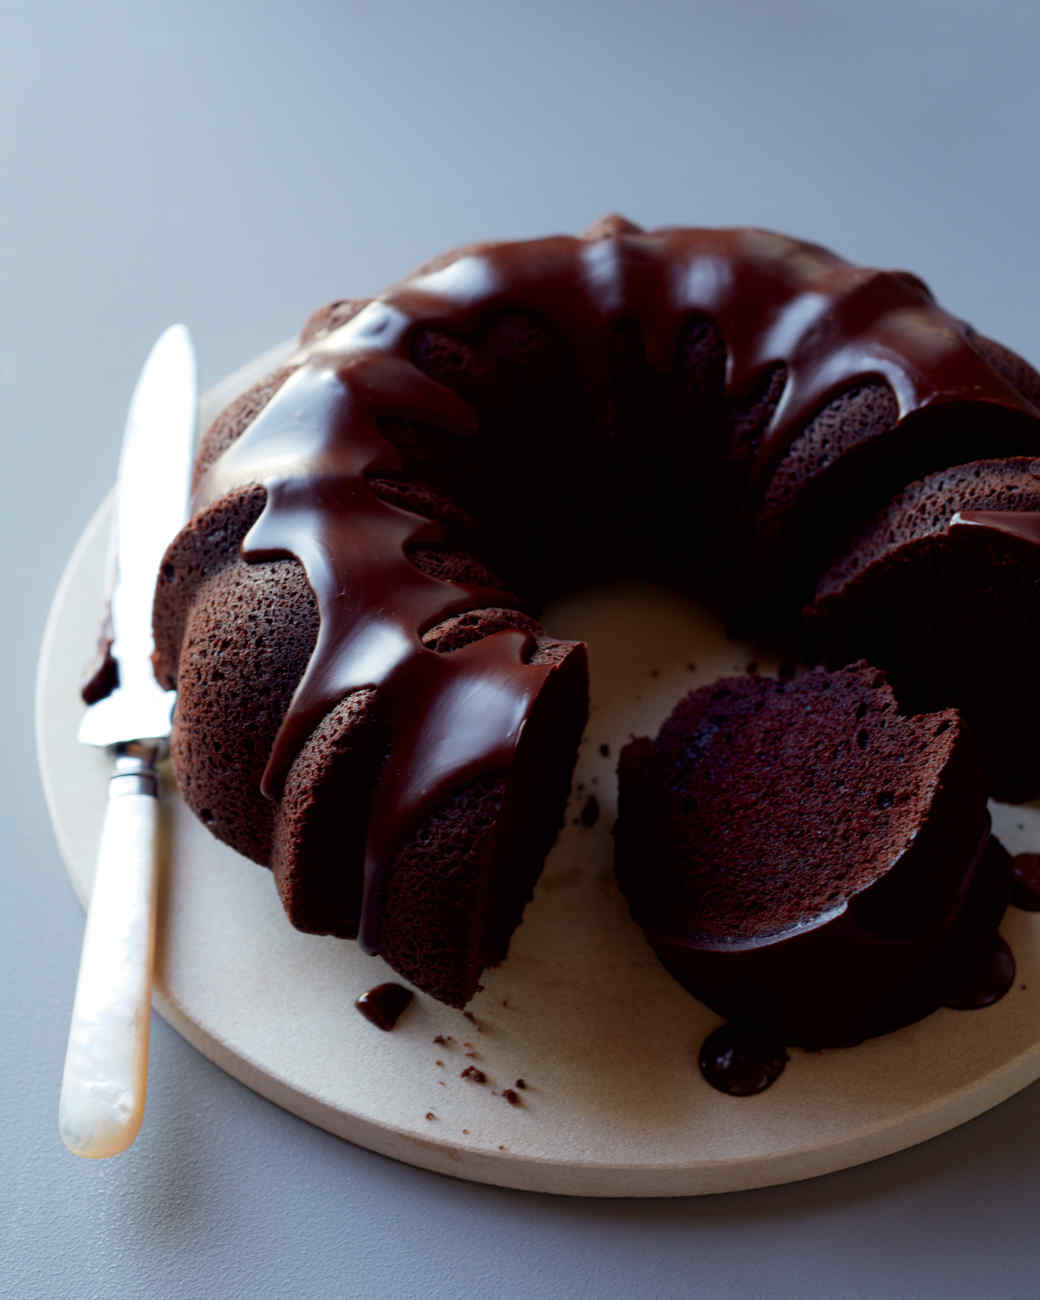 Chocolate cake with cherries: several dessert recipes